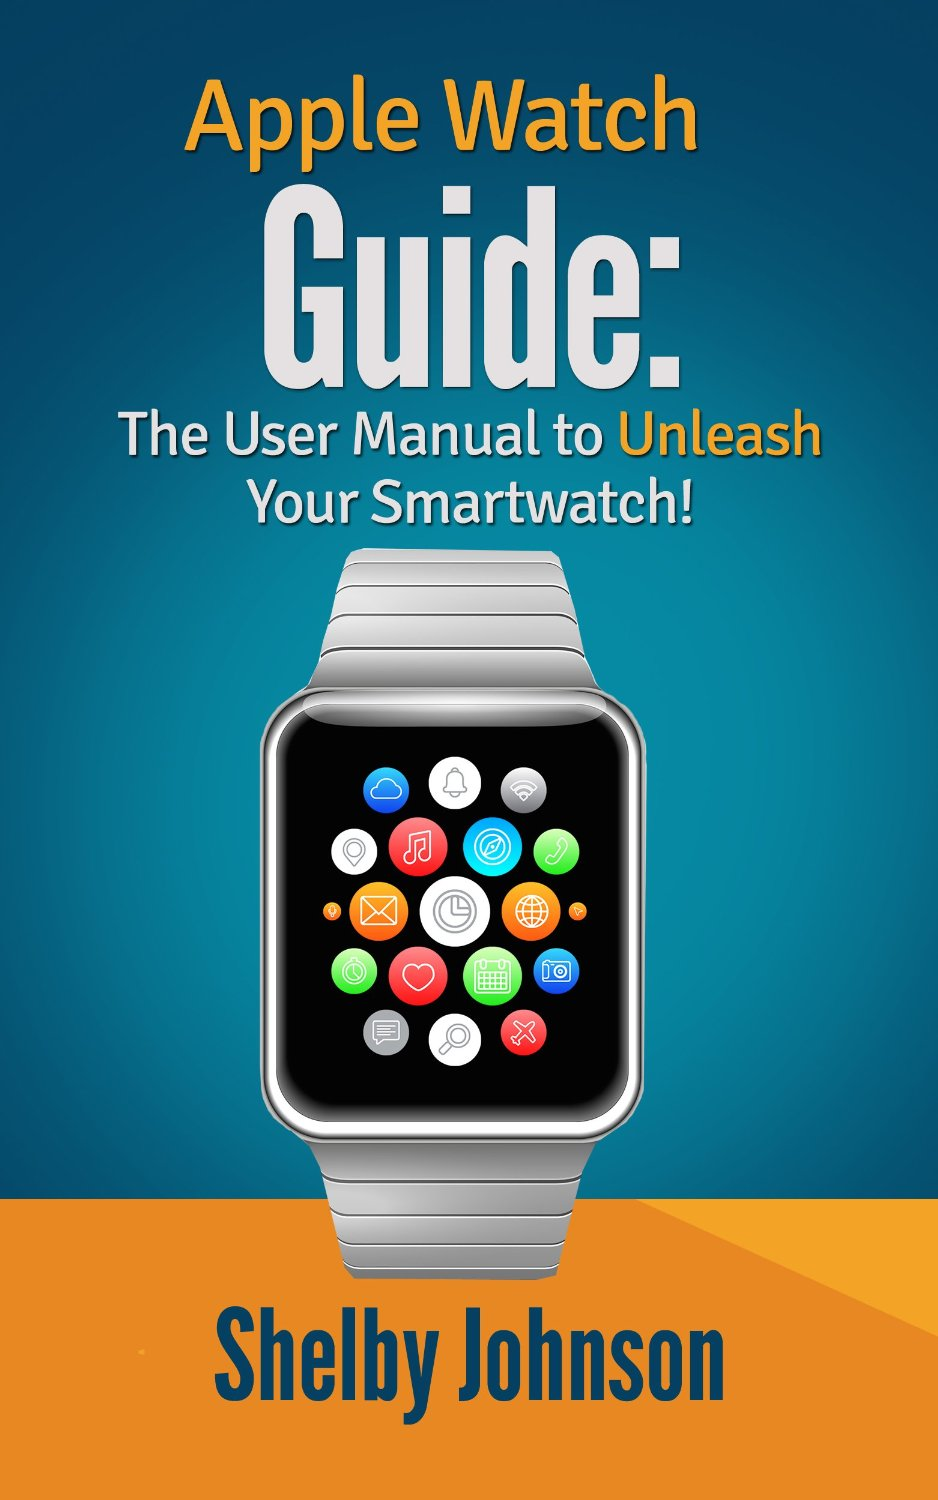 Apple Watch Guide: The User Manual to Unleash Your Smartwatch! free download